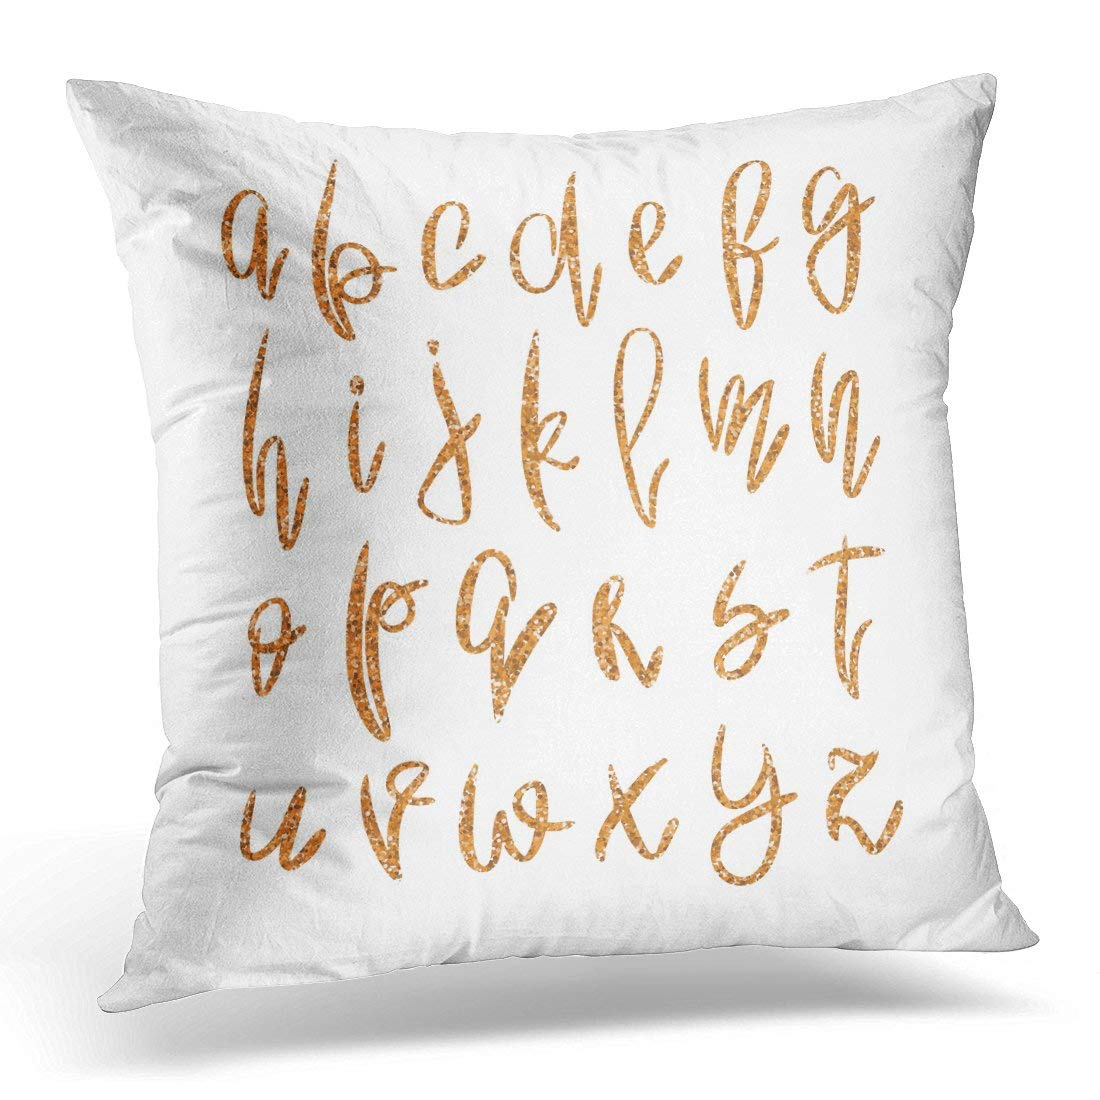 USART Golden Lowercase Alphabet Unique Rose Gold Glitter Handwritten ABC White for Glamour and Luxury Design Pillow Case Pillow Cover 20x20 inch